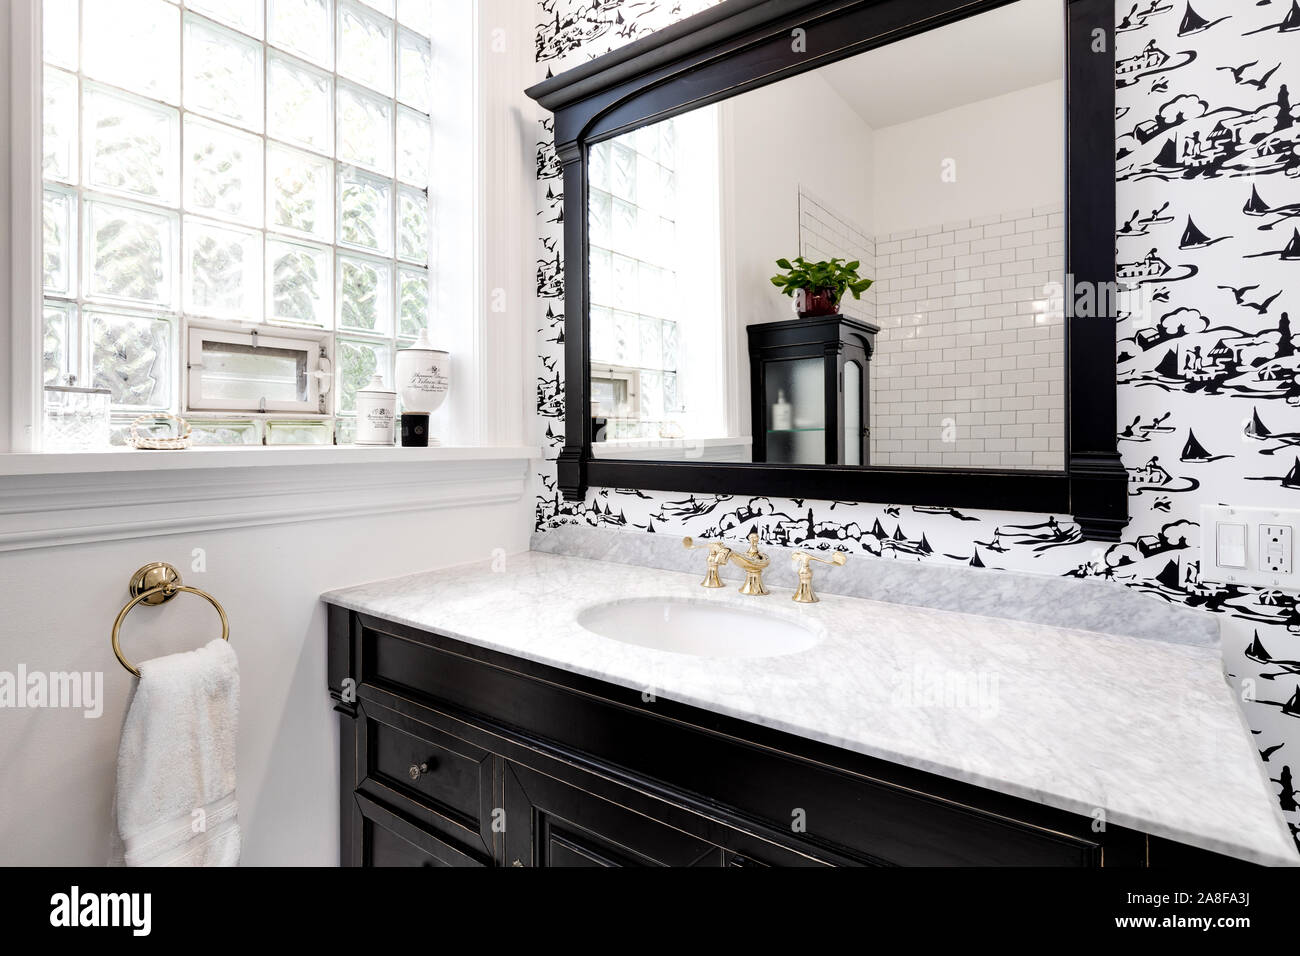 A Luxurious Bathroom In A Downtown Chicago Condo With Granite And Gold Hardware Dark Wood Vanity And An Accent Wall With Black And White Wallpaper Stock Photo Alamy